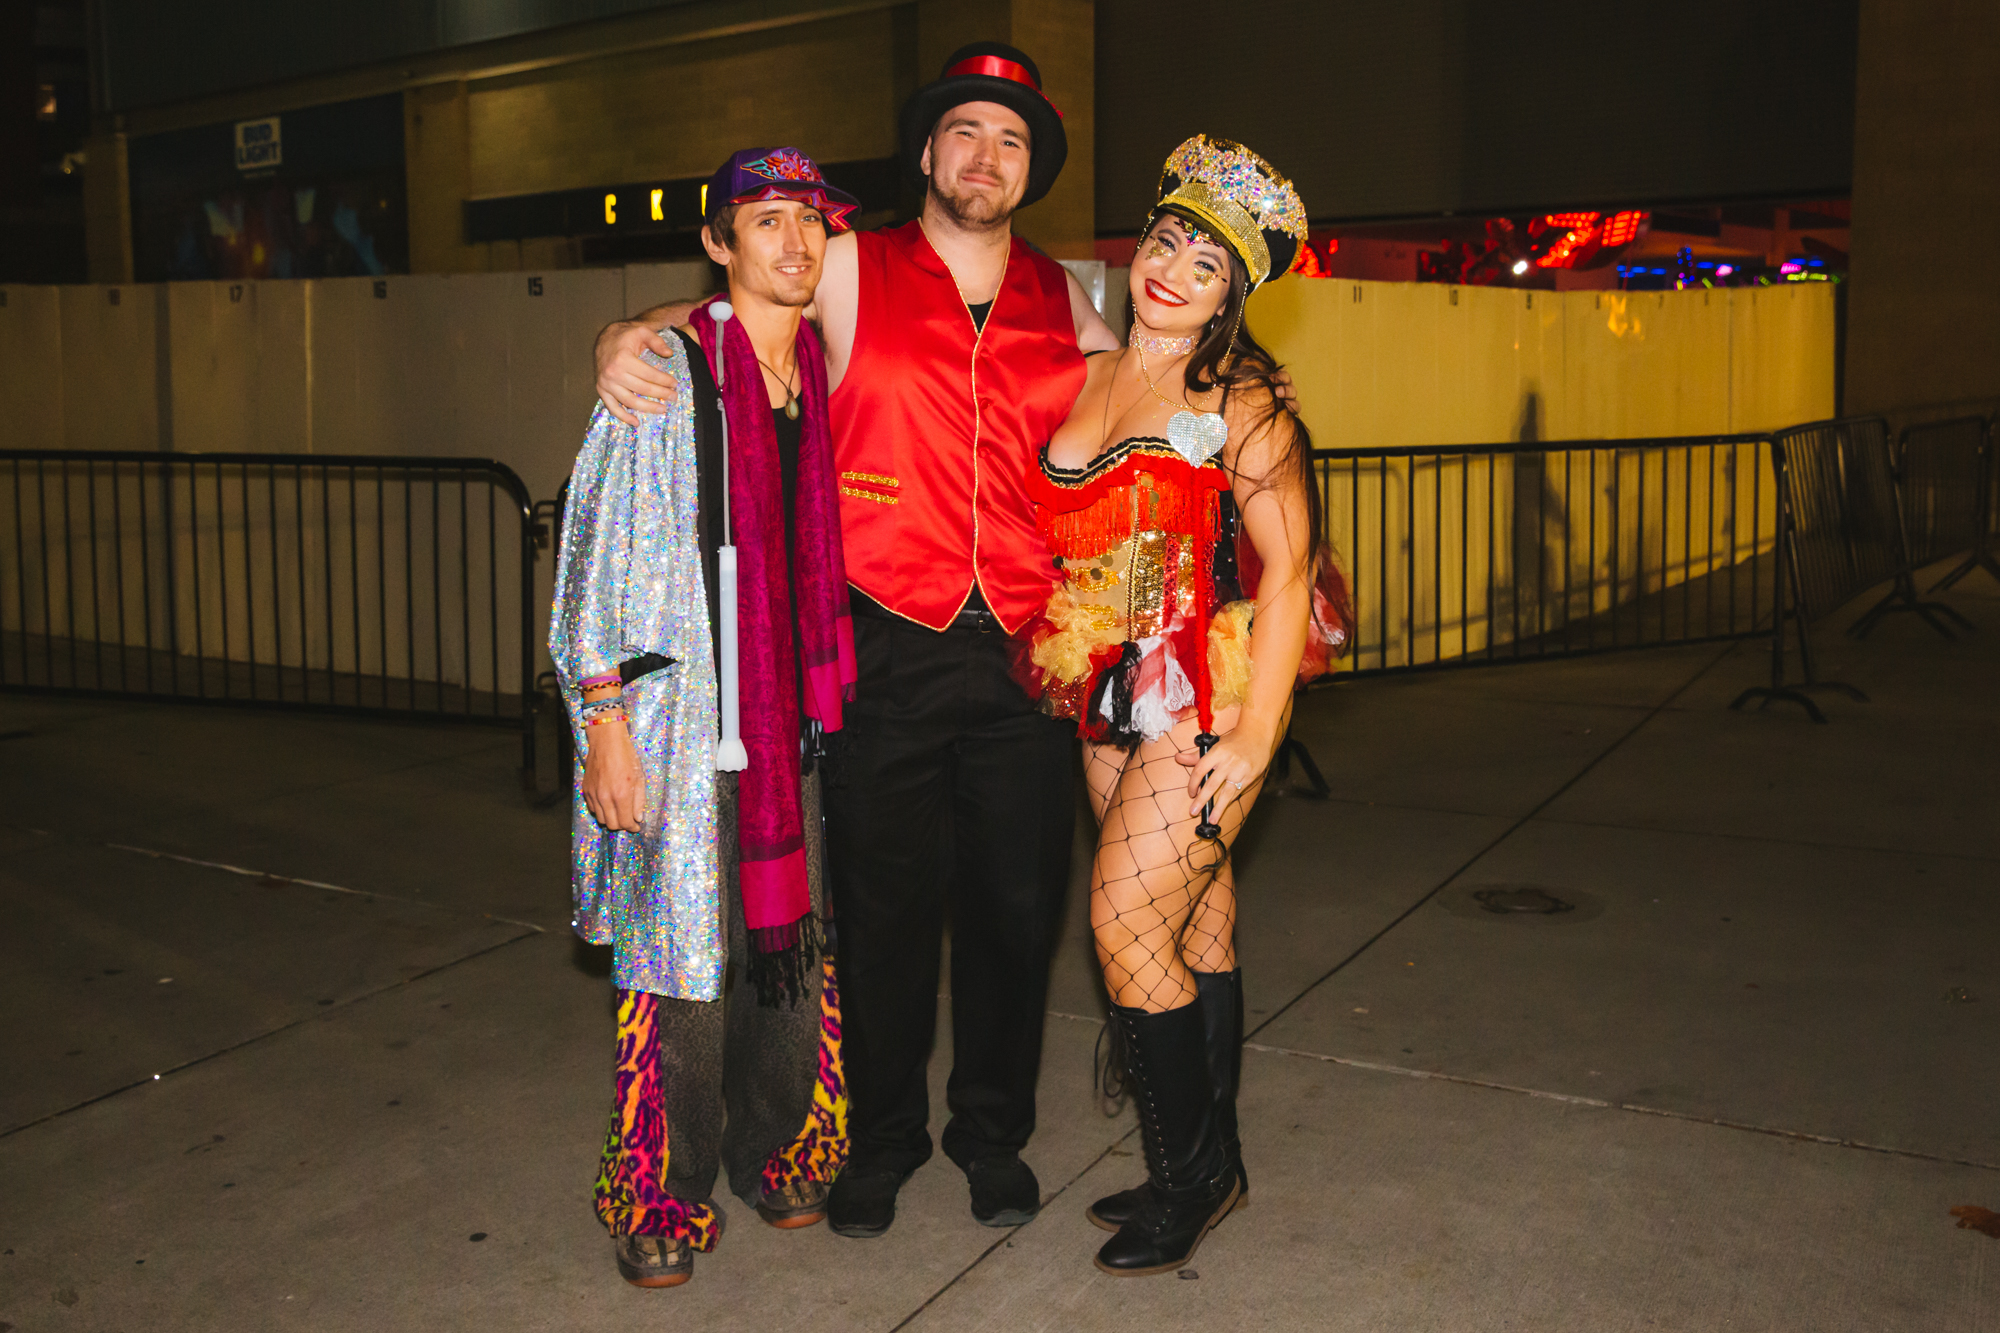 Thousands of people came to the WaMu Theater for the annual FreakNight Electronic Music Festival on Friday night, October 26 2018. The event brings out wildly costumed fans who dance the night away, go on rides and play carnival games. (Image: Sunita Martini / Seattle Refined)